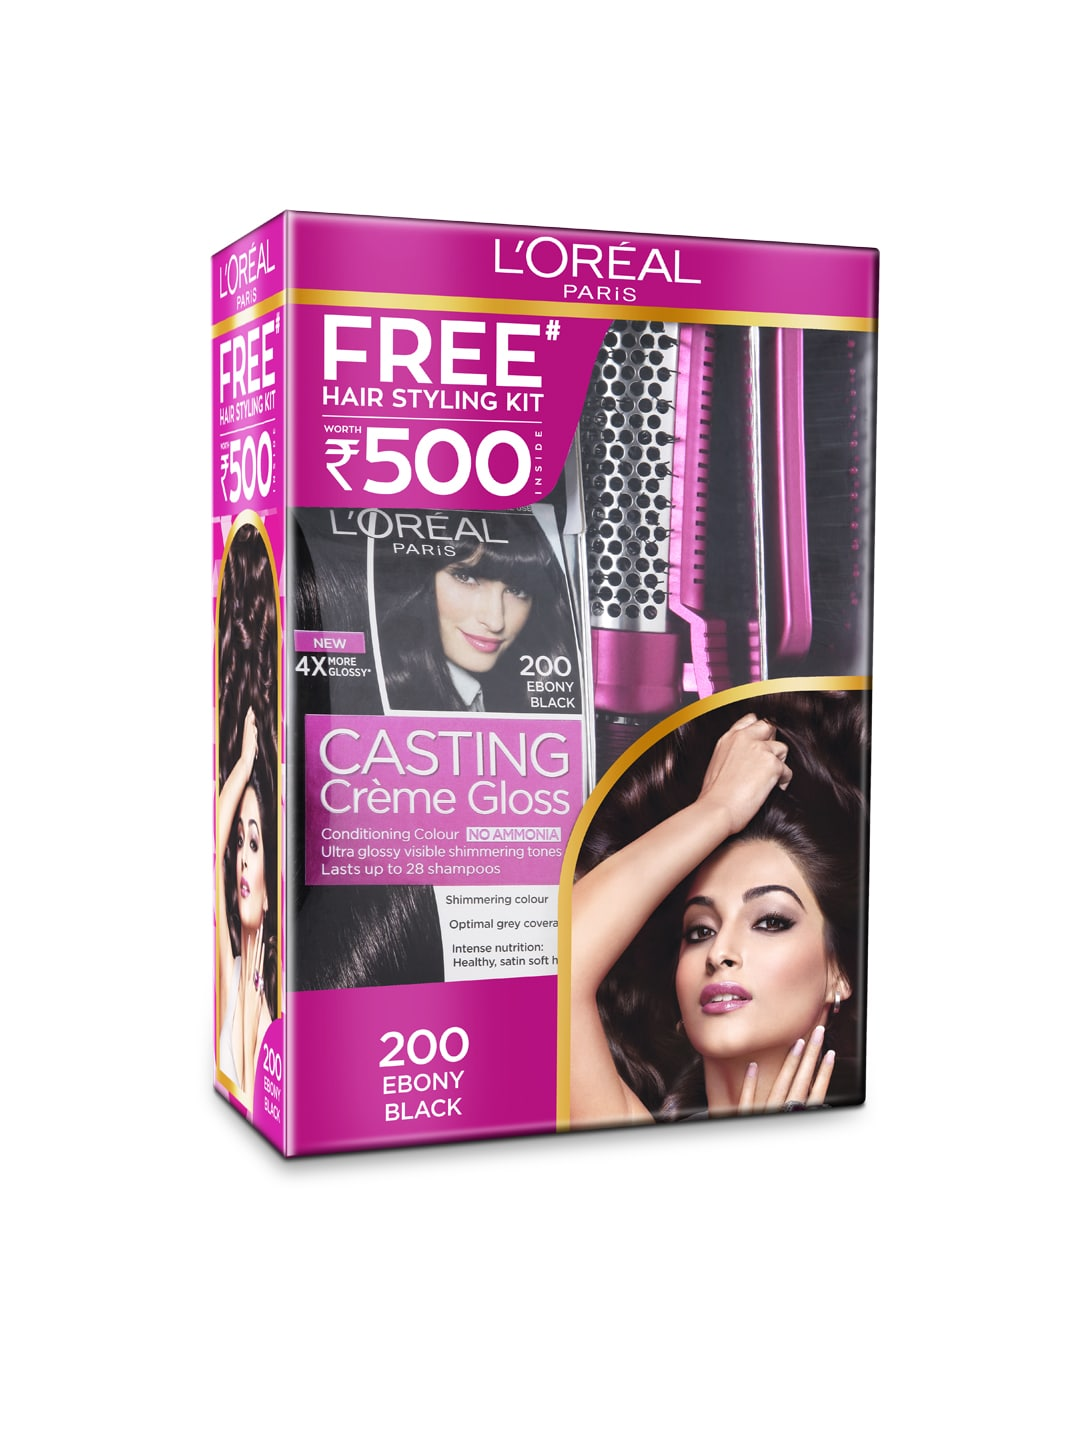 L'Oreal Paris Casting Creme Gloss 200 Ebony Black with Free Hair Styling Kit image